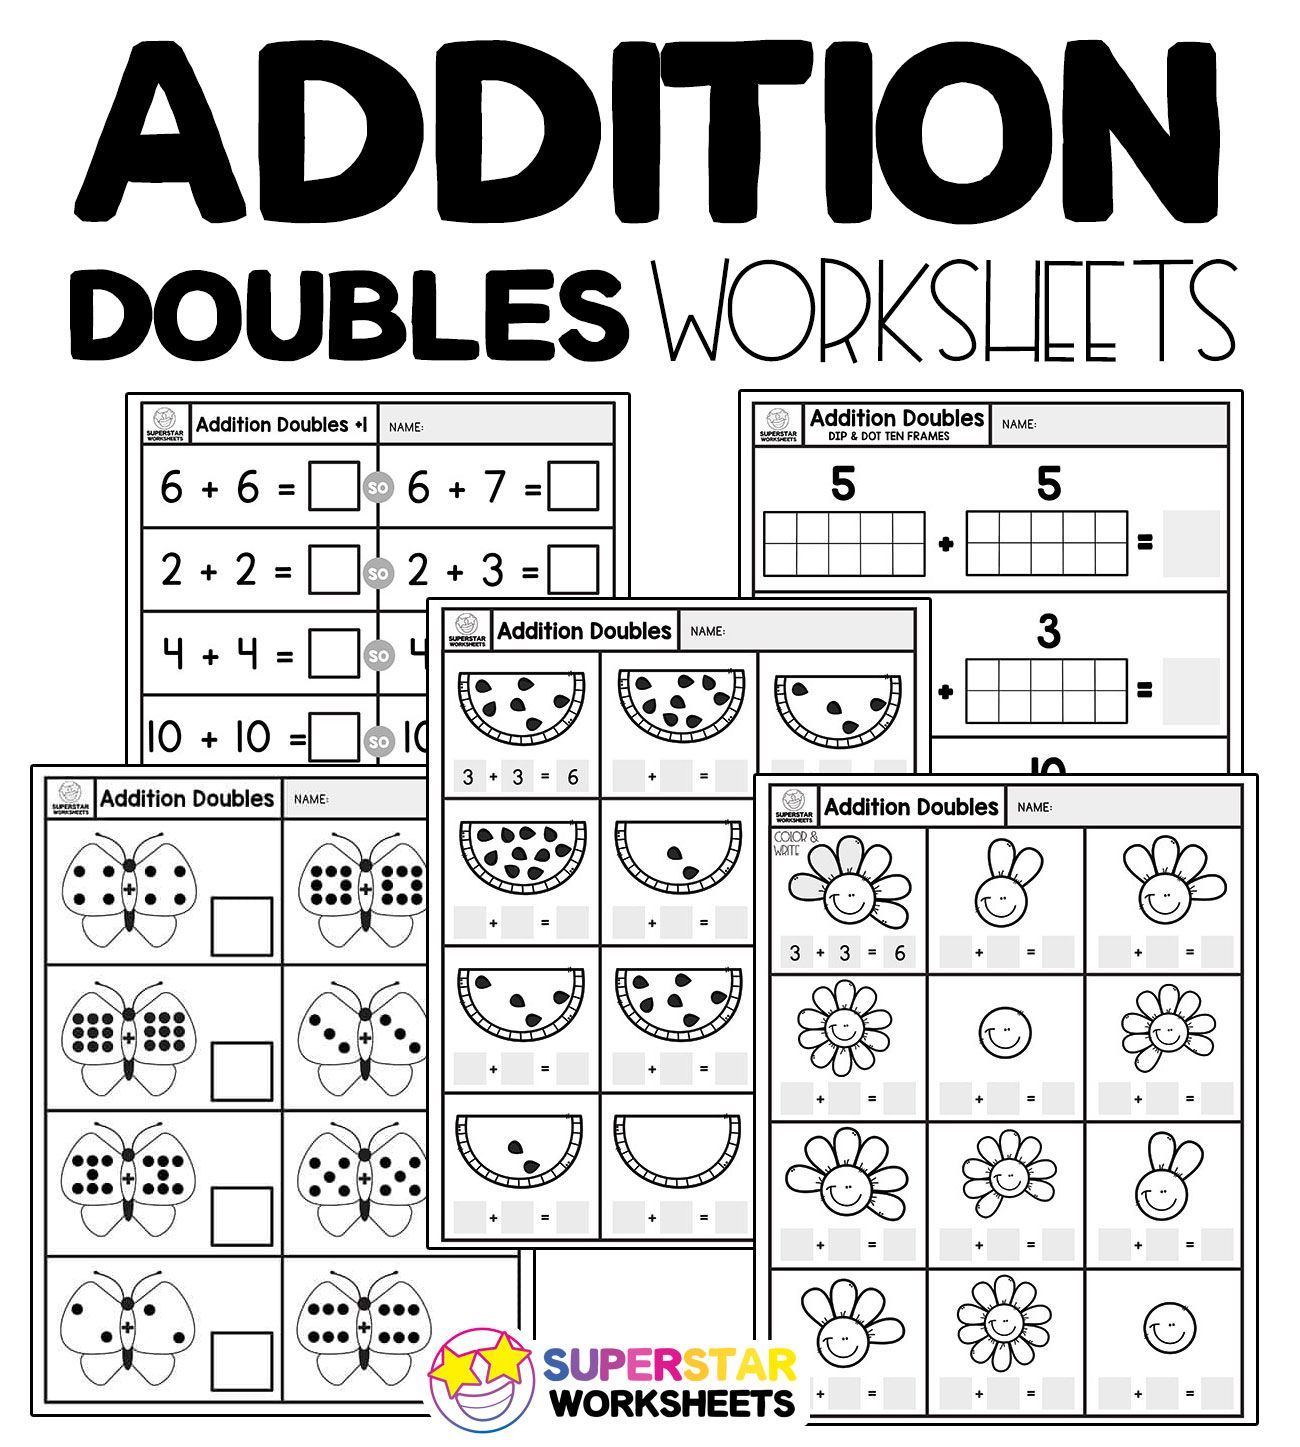 Addition Doubles Worksheets In